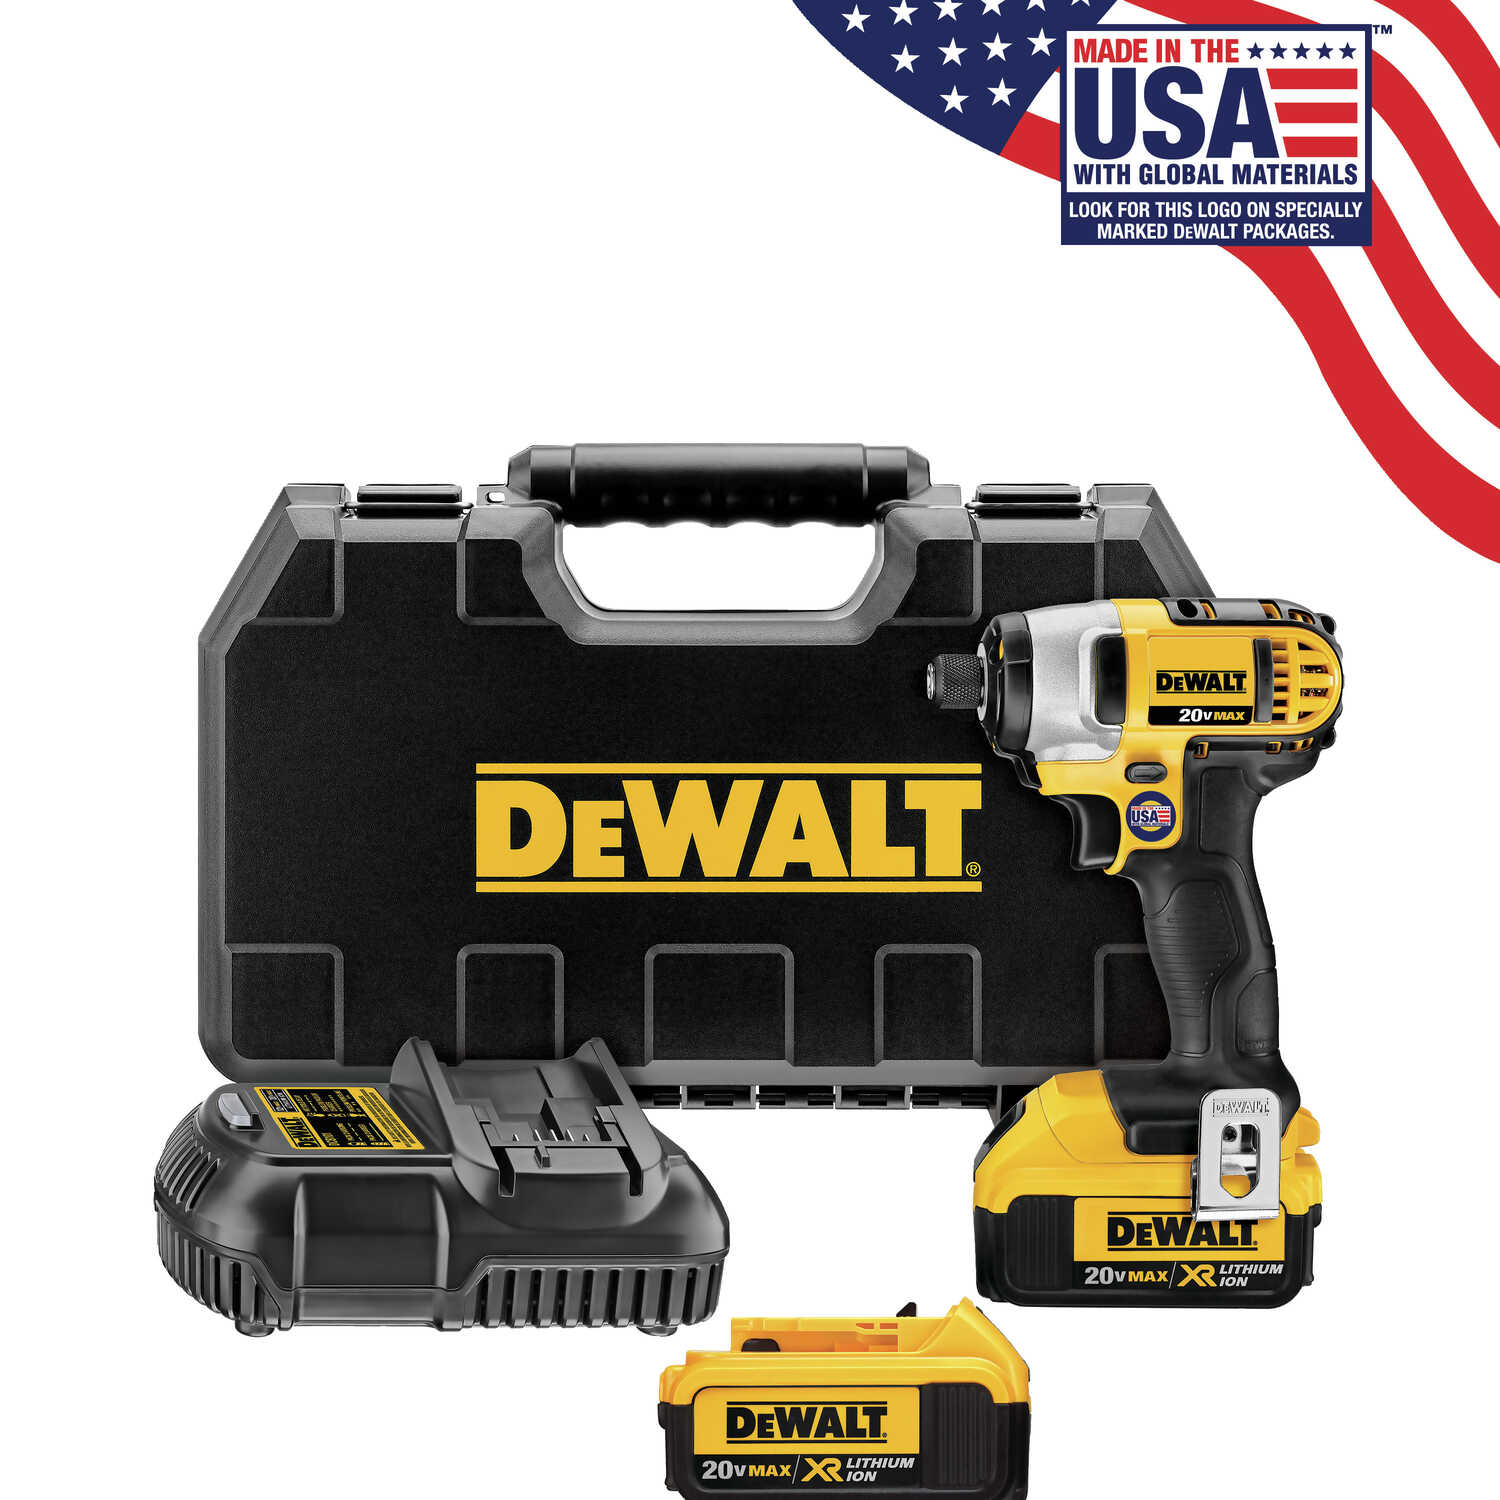 DeWalt  20V MAX  Cordless  Brushed  Impact Driver  Kit  1400 in-lb